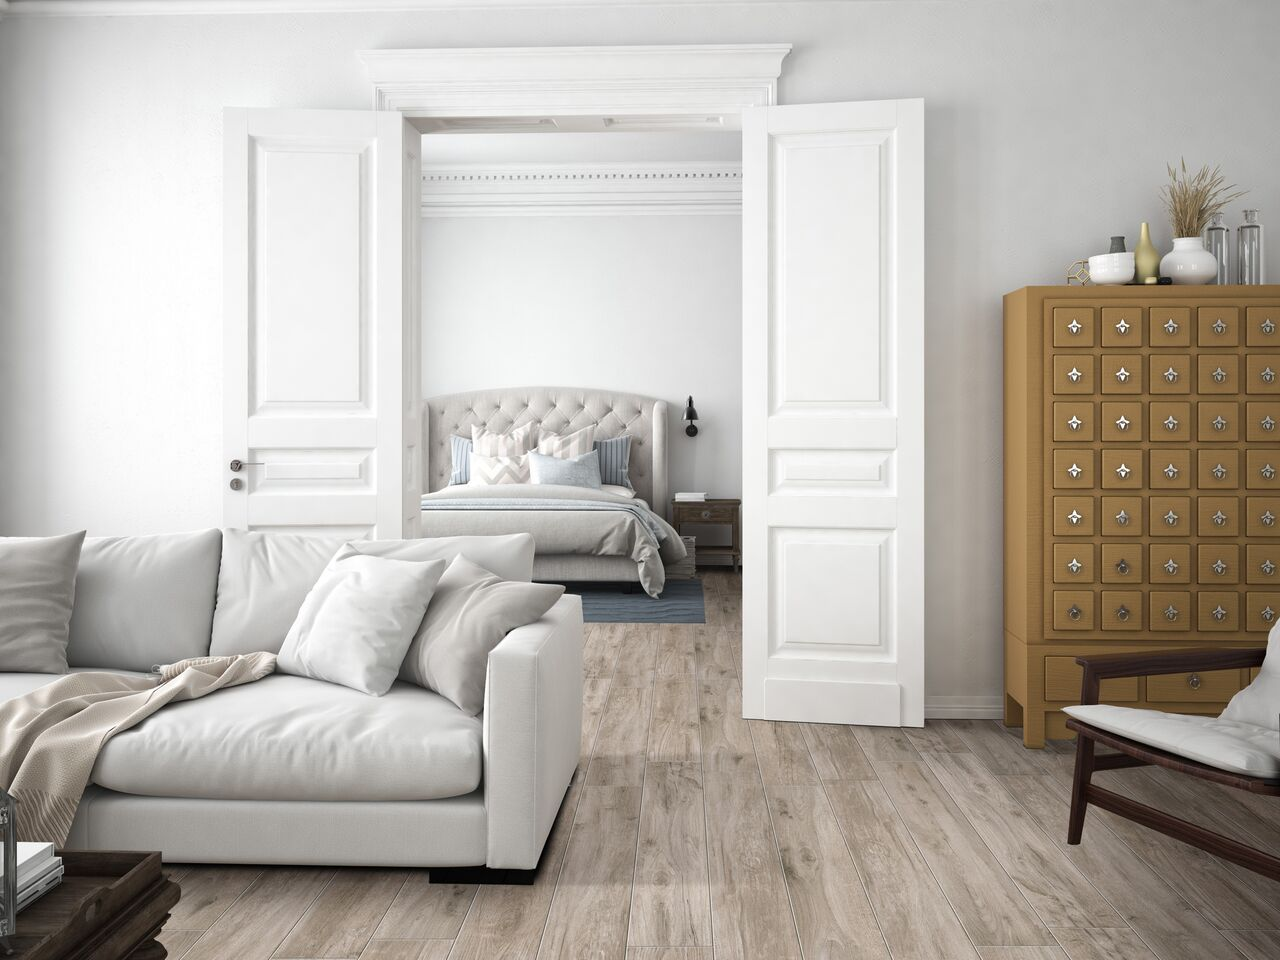 Ege seramik introduces savannah commercial construction and ede ceramiks 022416 dailygadgetfo Image collections